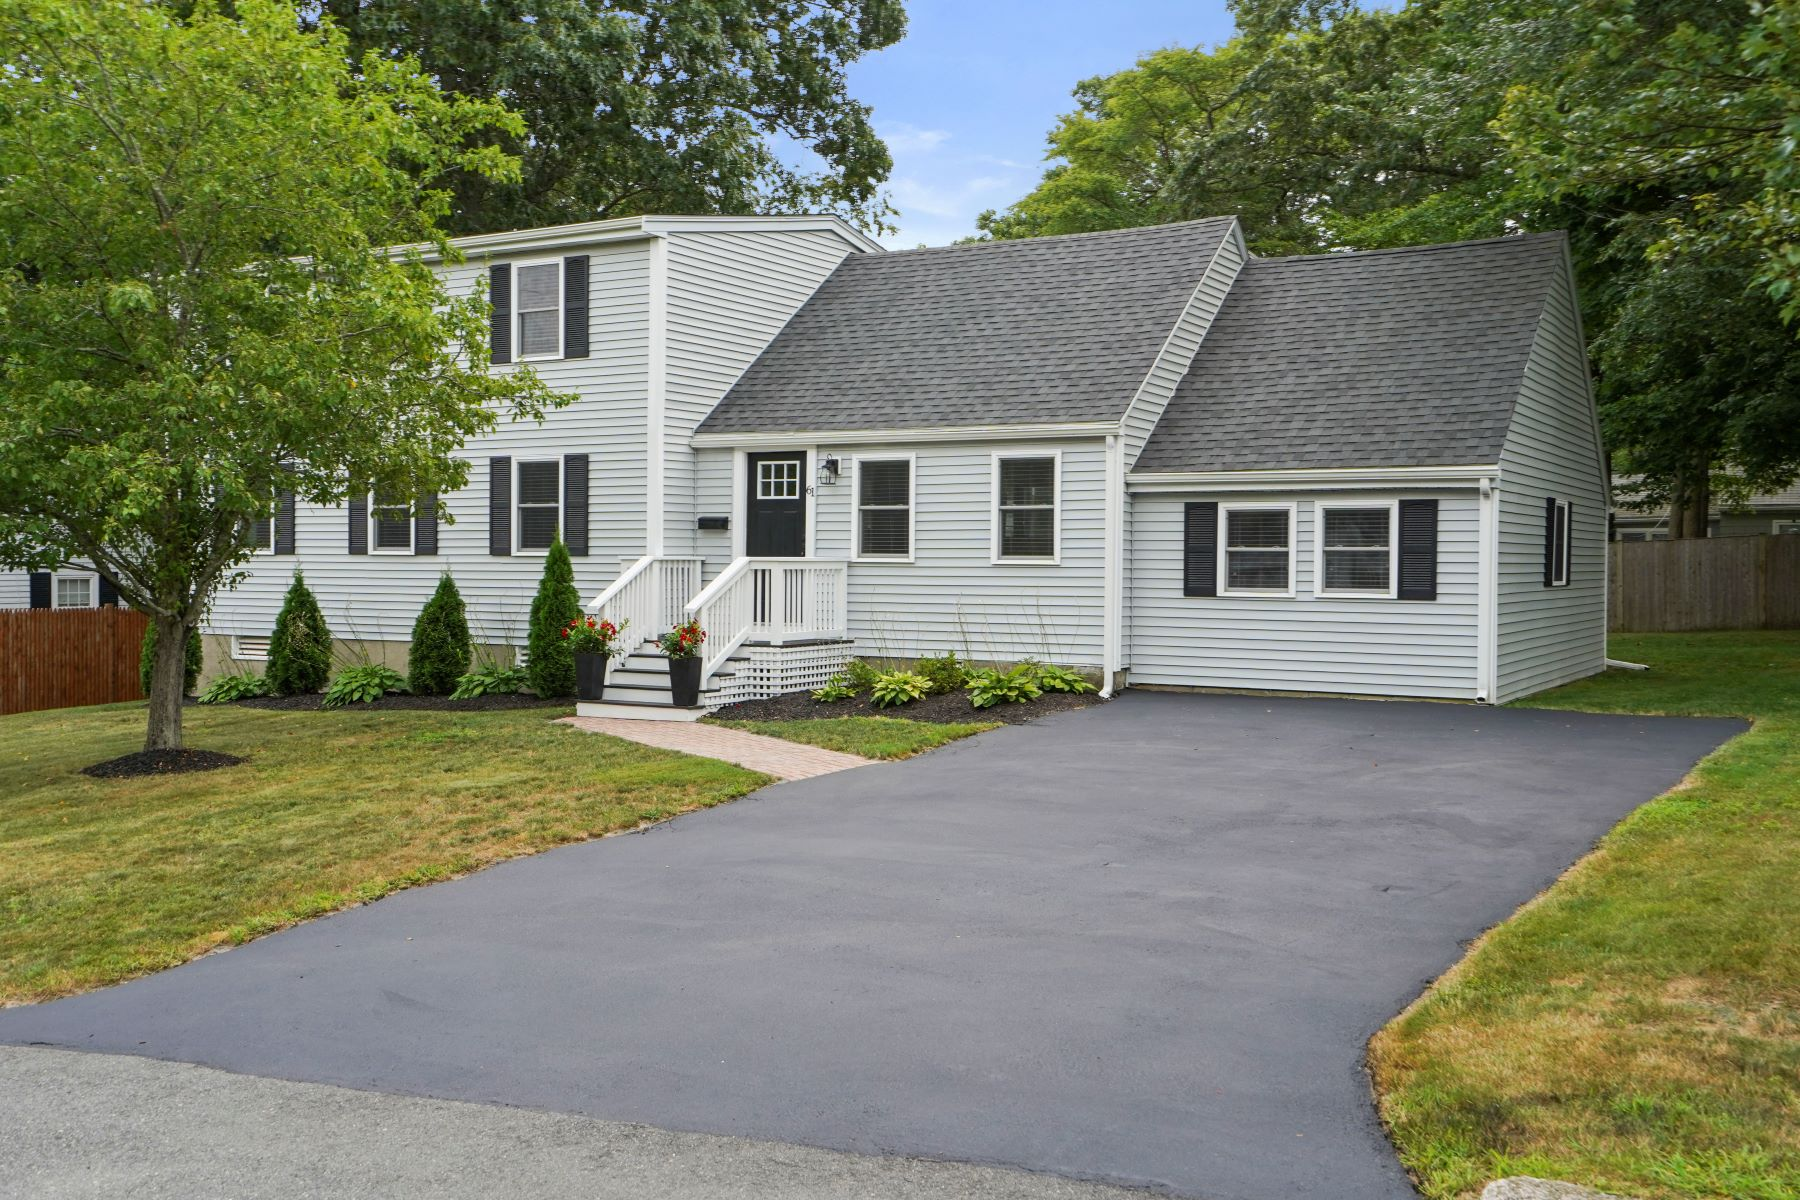 Single Family Homes for Active at 61 Constitution Ave, Weymouth 61 Constitution Avenue Weymouth, Massachusetts 02190 United States